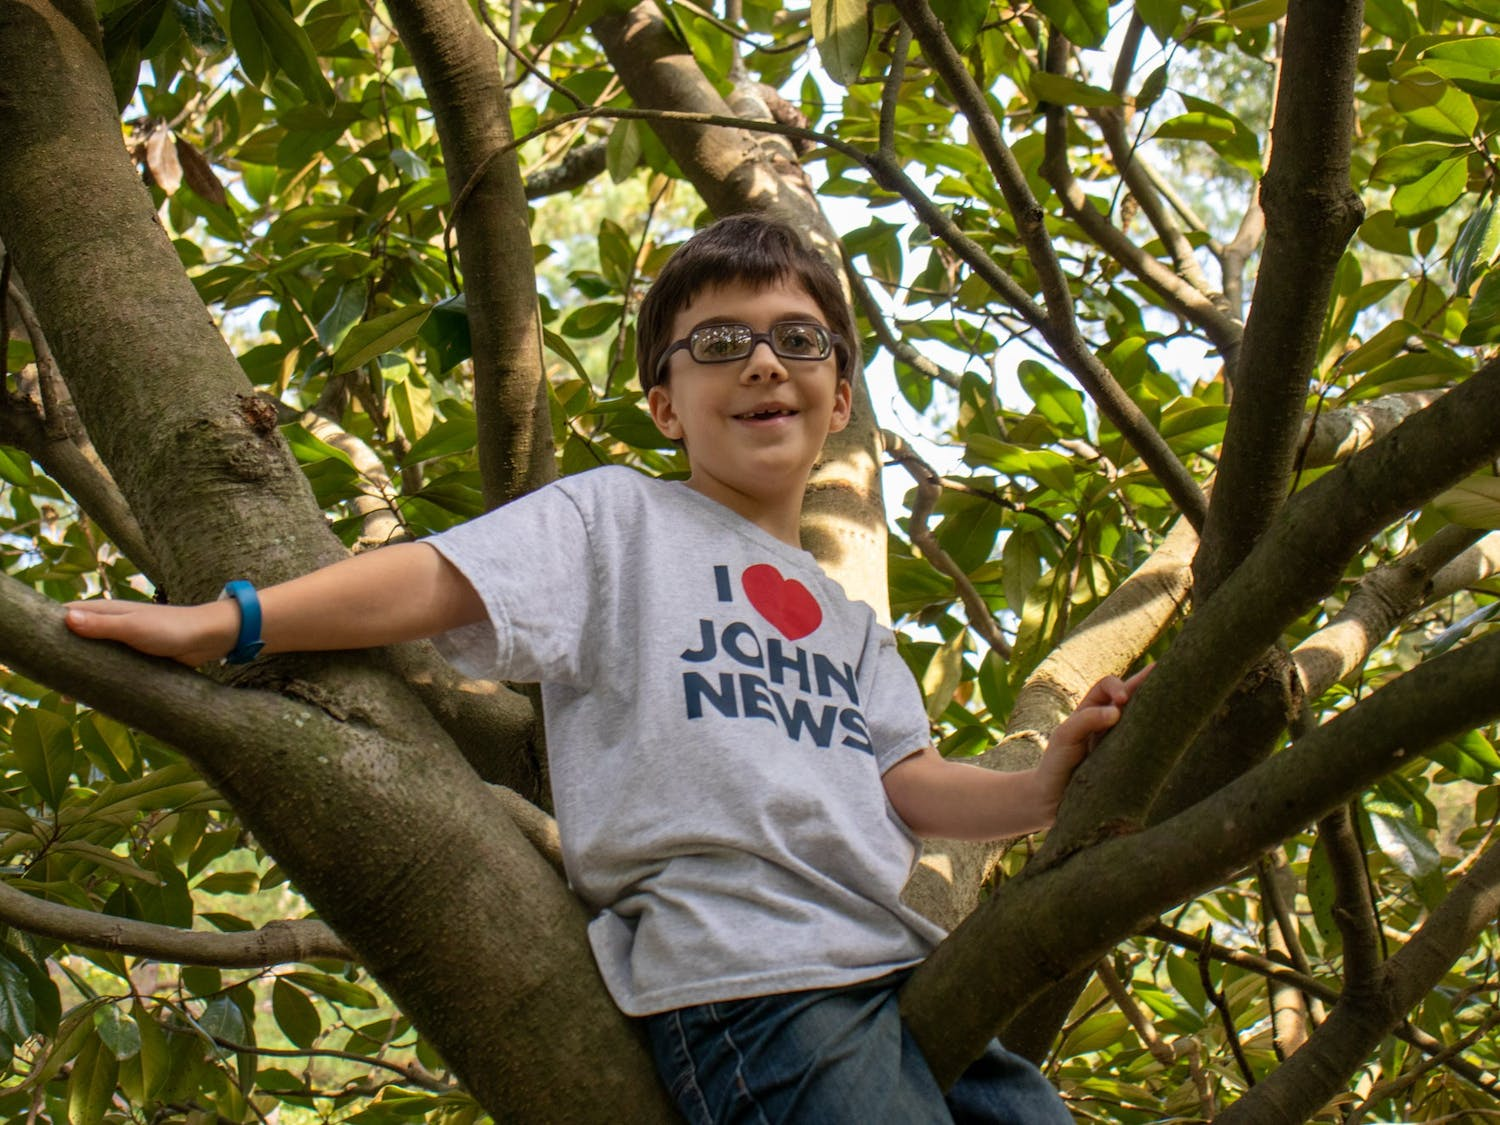 John Wortman, creator of John News on Youtube, poses for a portrait while climbing a tree on Sunday, Oct. 4, 2020.